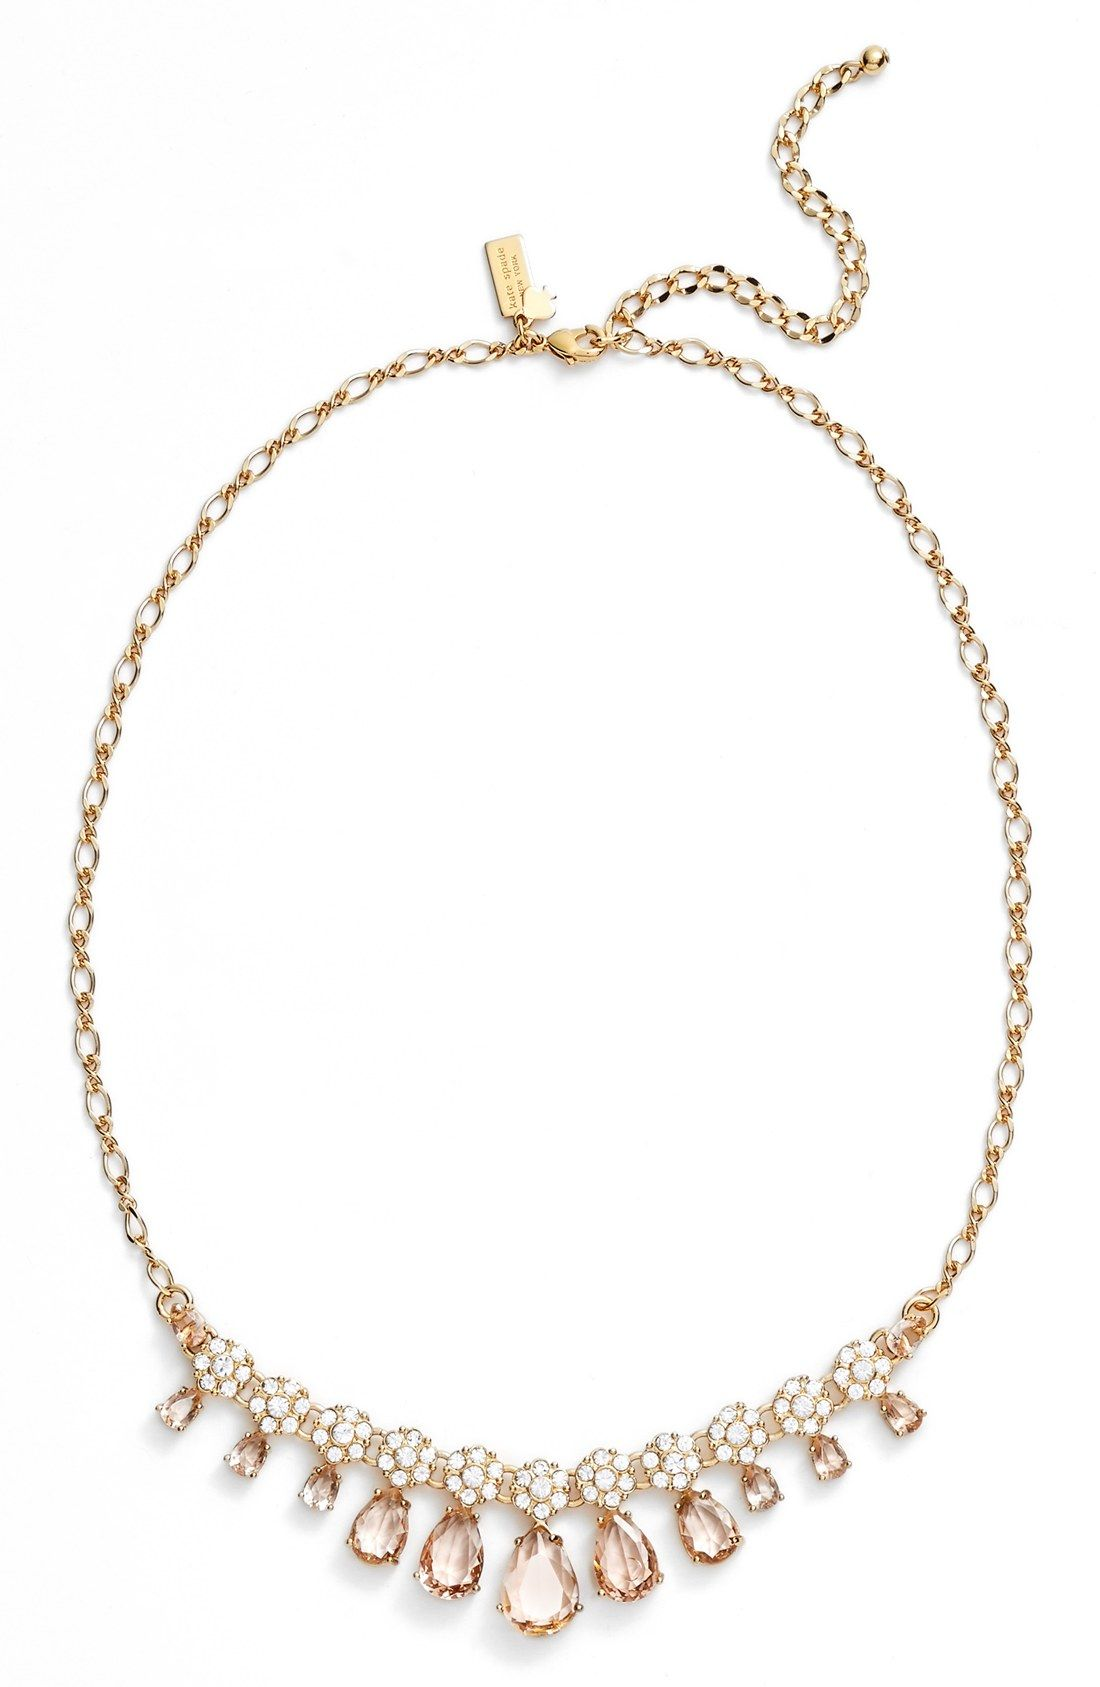 kate spade new york at first blush frontal necklace Bling